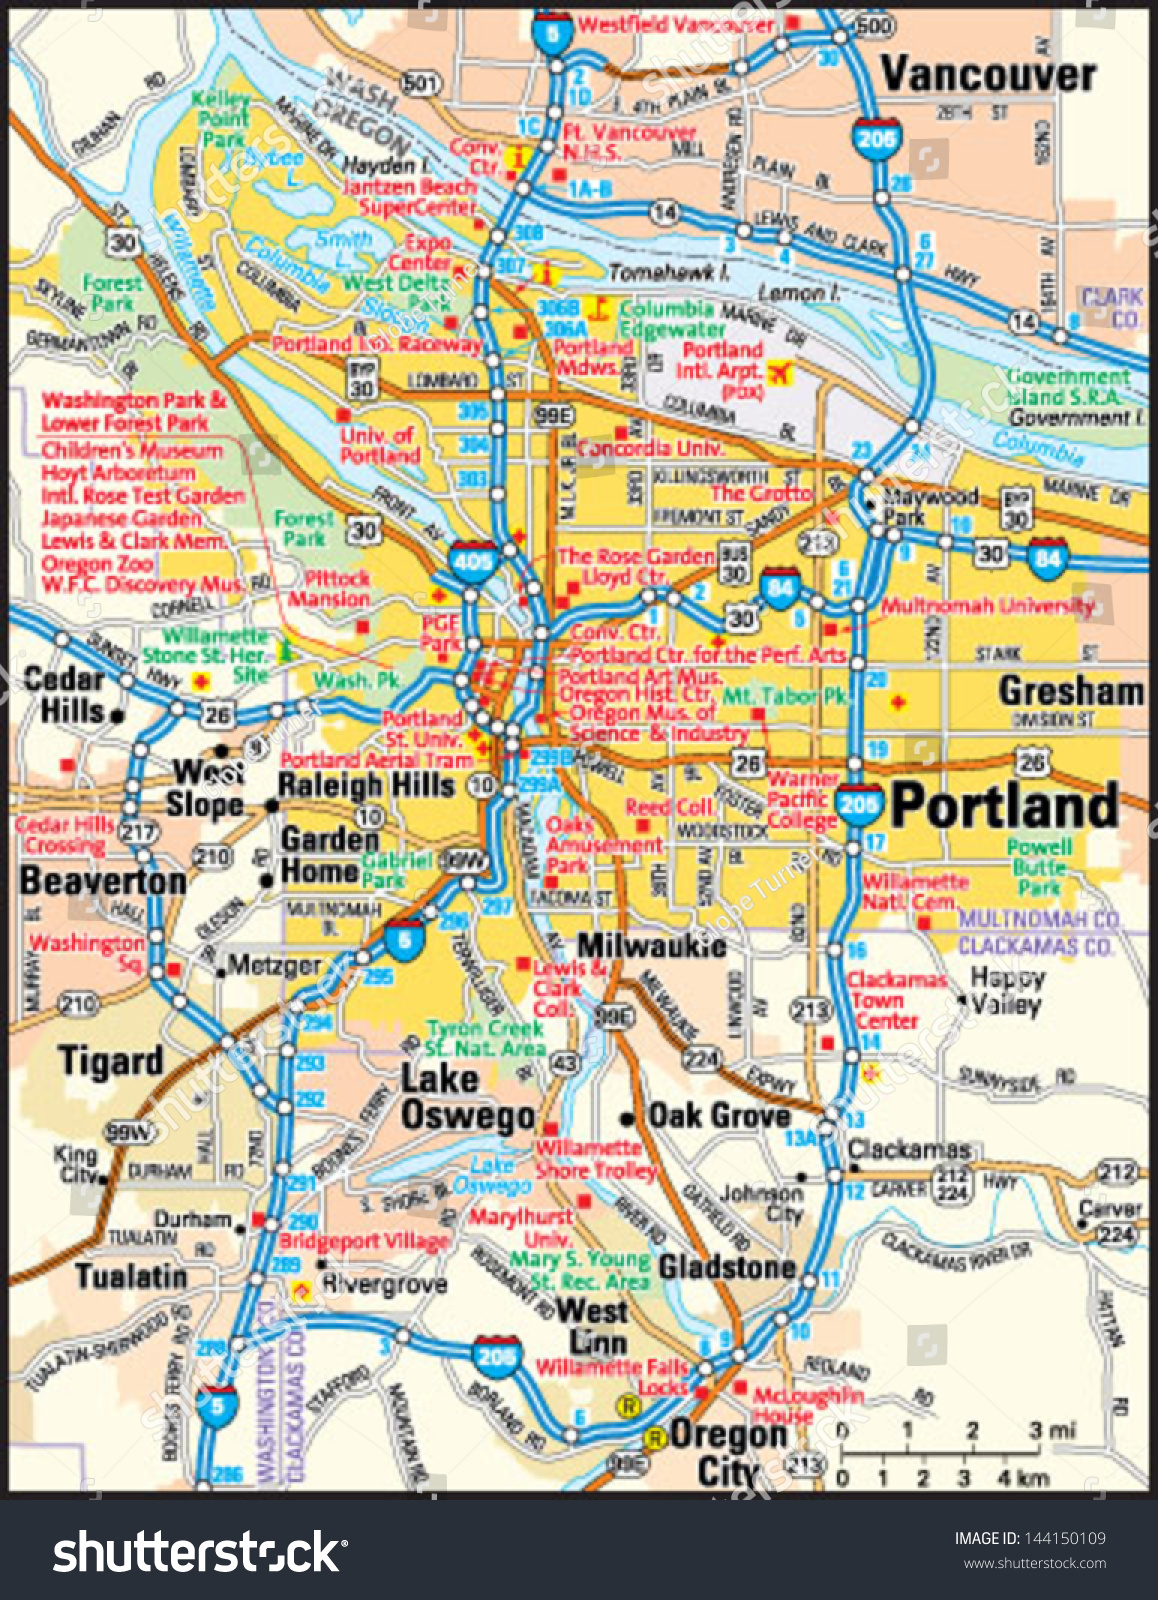 portland oregon area map Portland Oregon Area Map Stock Vector Royalty Free 144150109 portland oregon area map